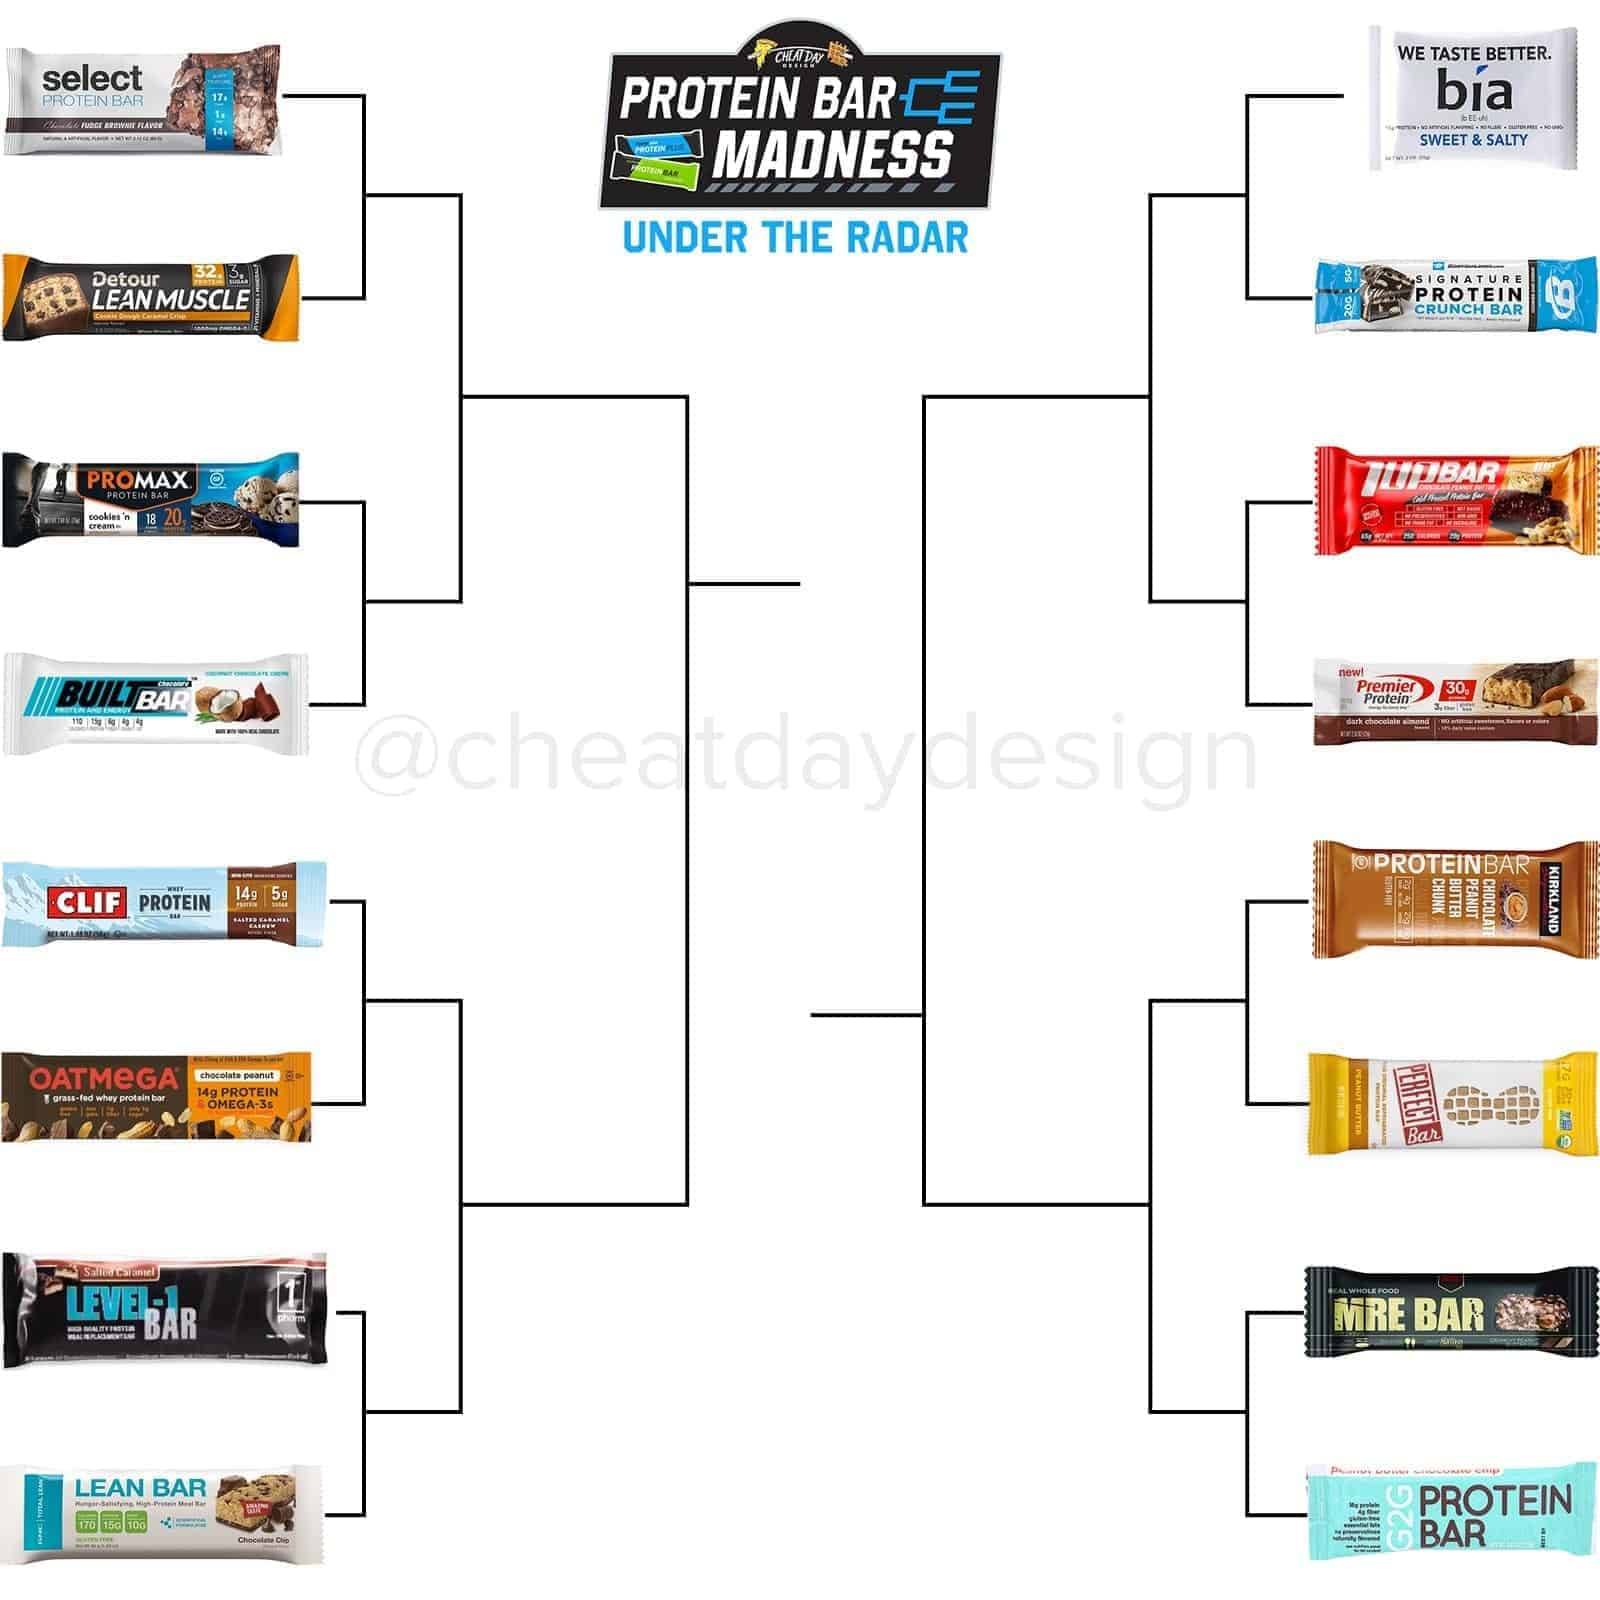 Protein Bar March Madness